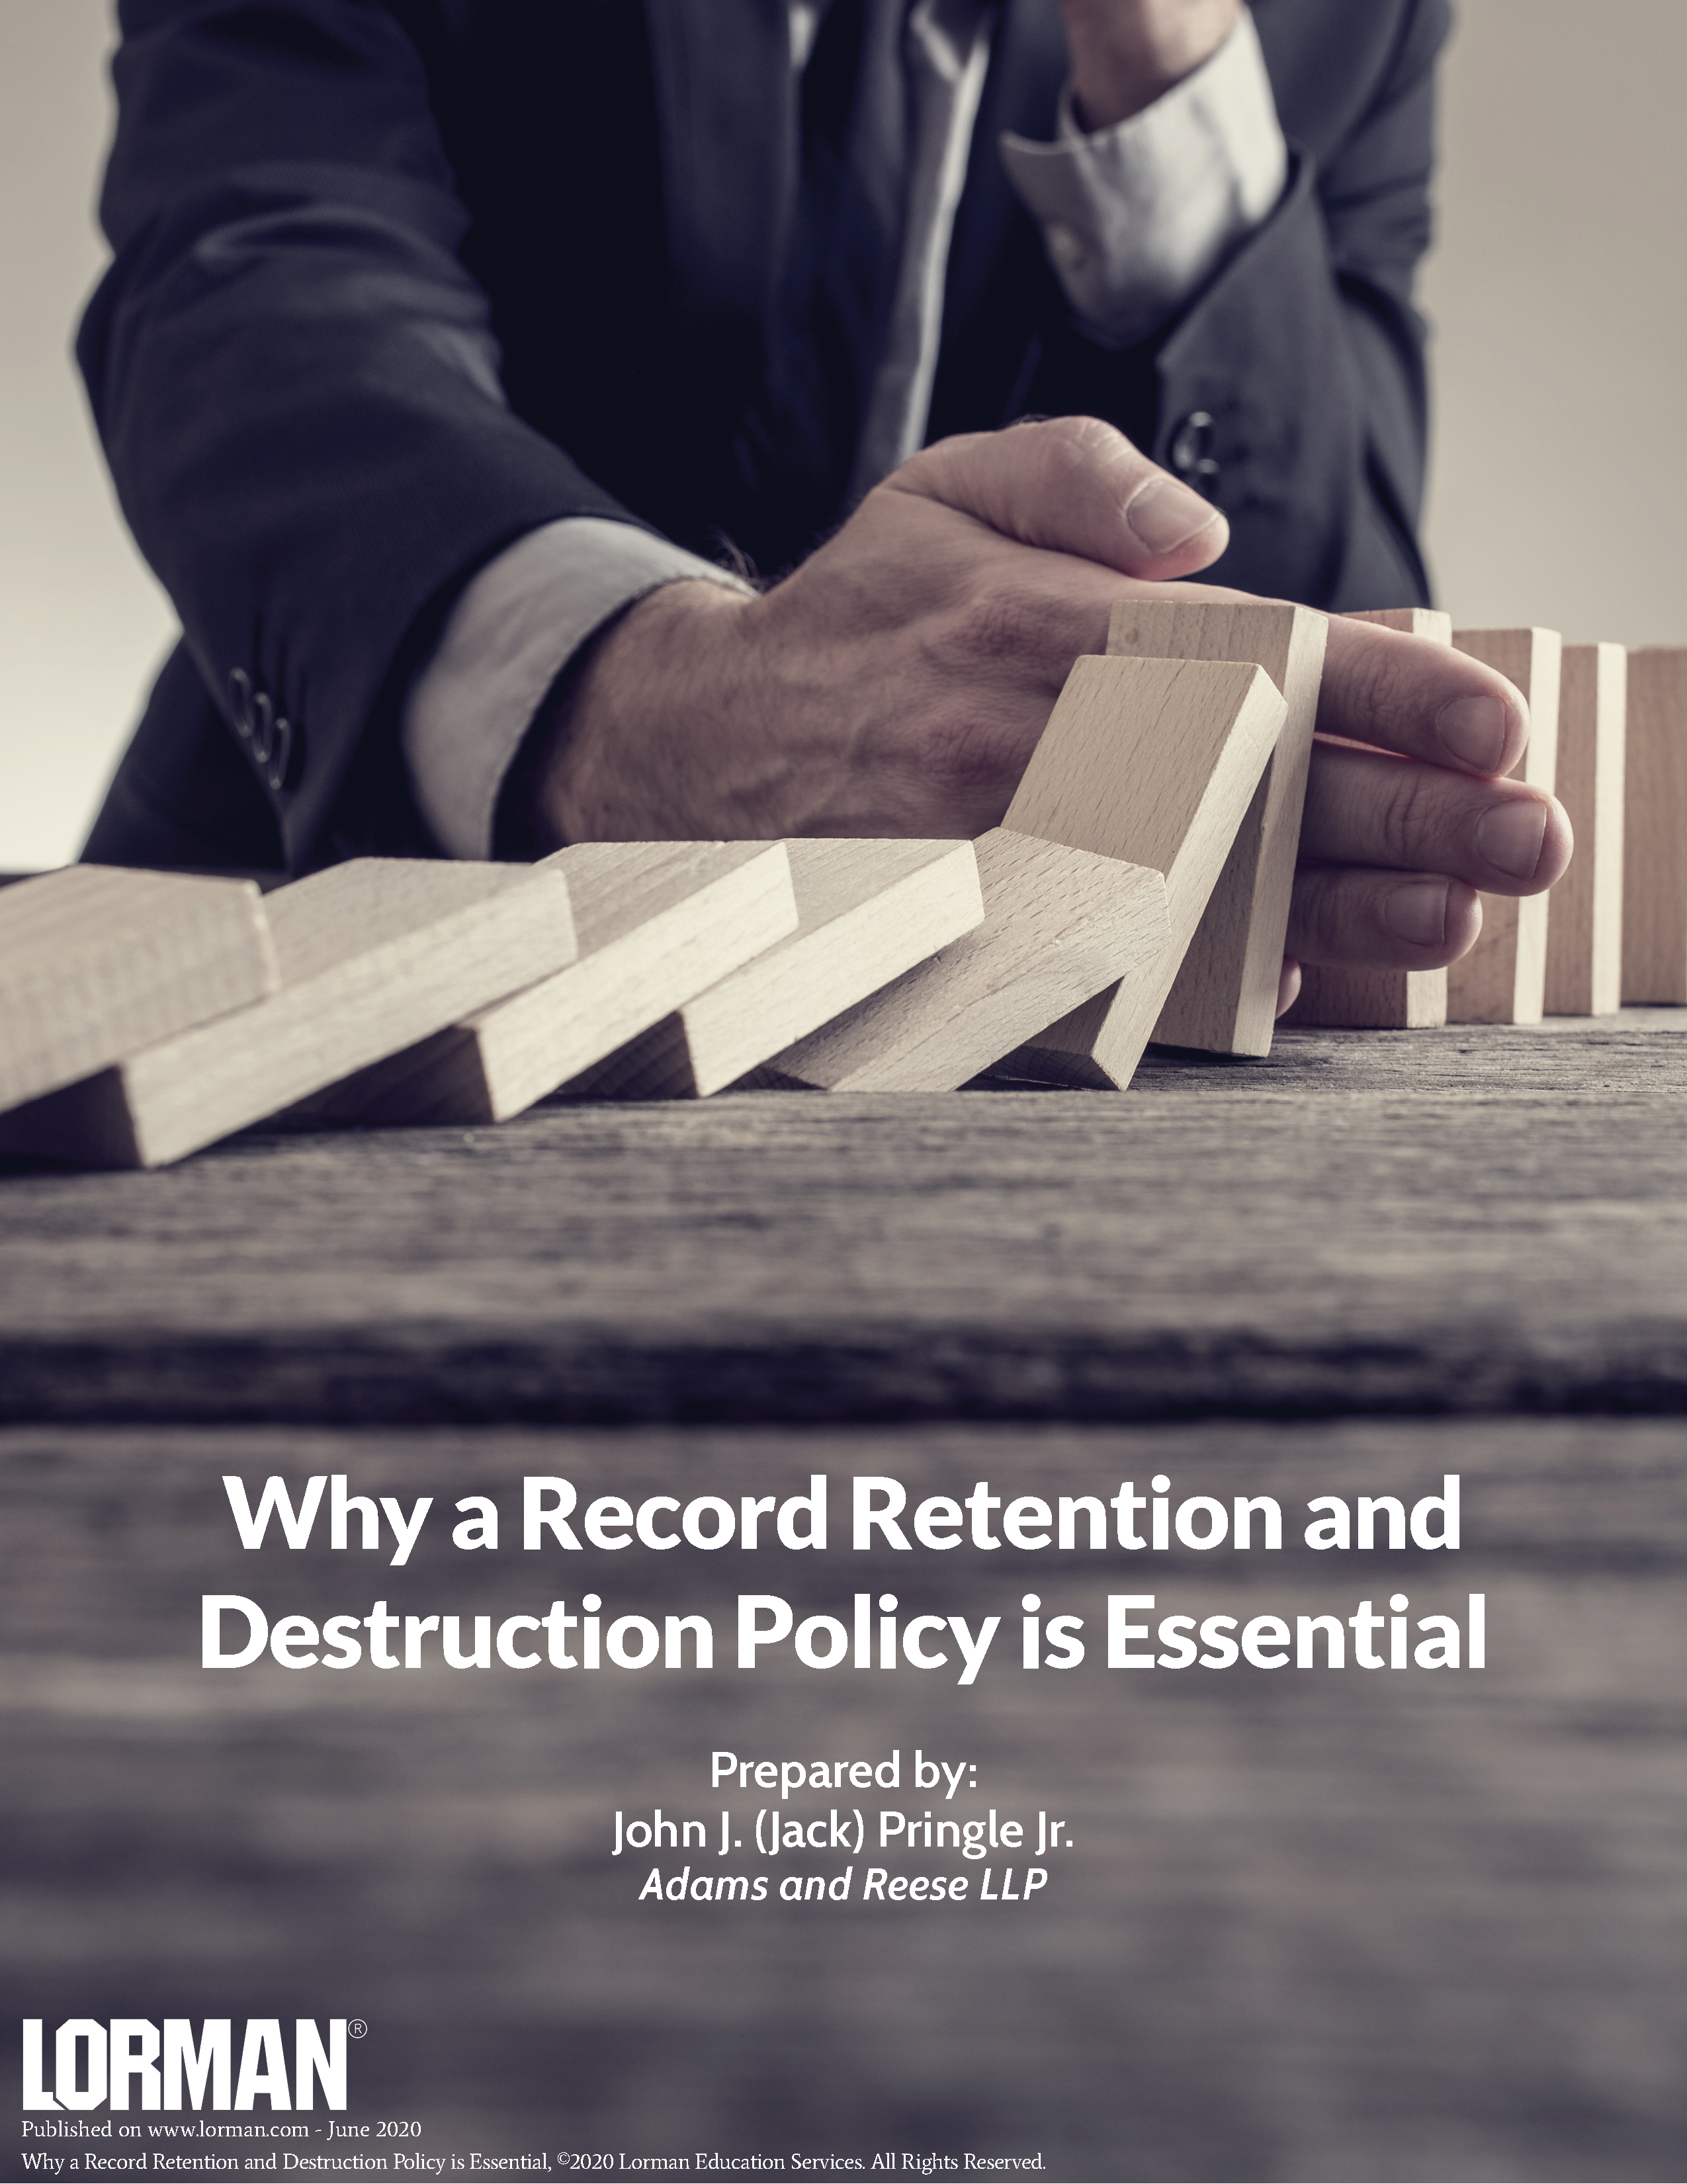 Why a Record Retention and Destruction Policy is Essential